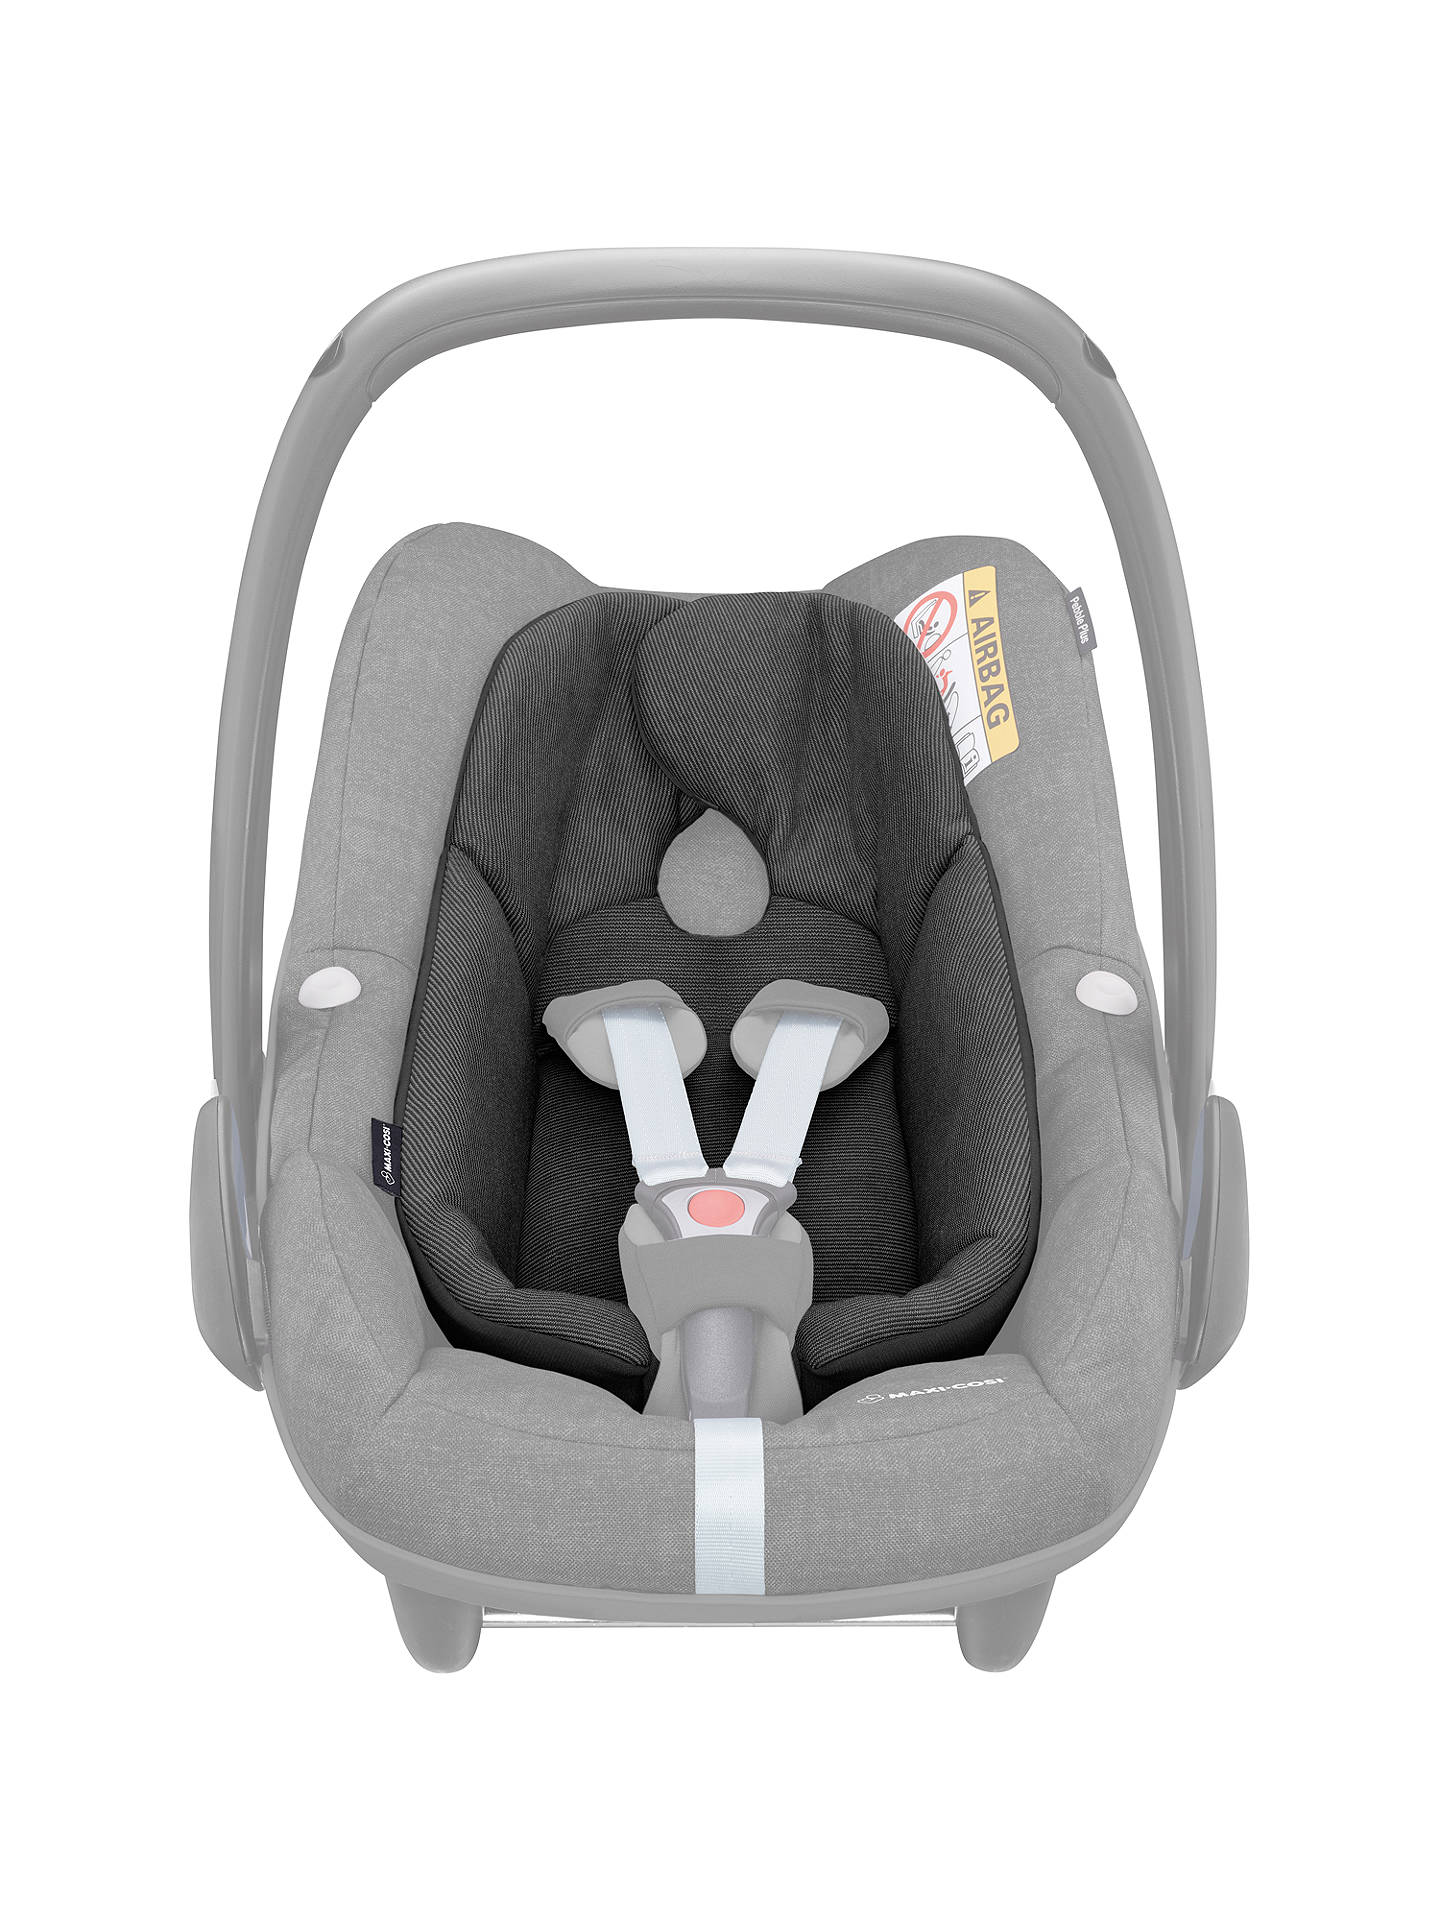 Buy Maxi-Cosi Pebble Plus i-Size Group 0+ Baby Car Seat, Nomad Black Online at johnlewis.com